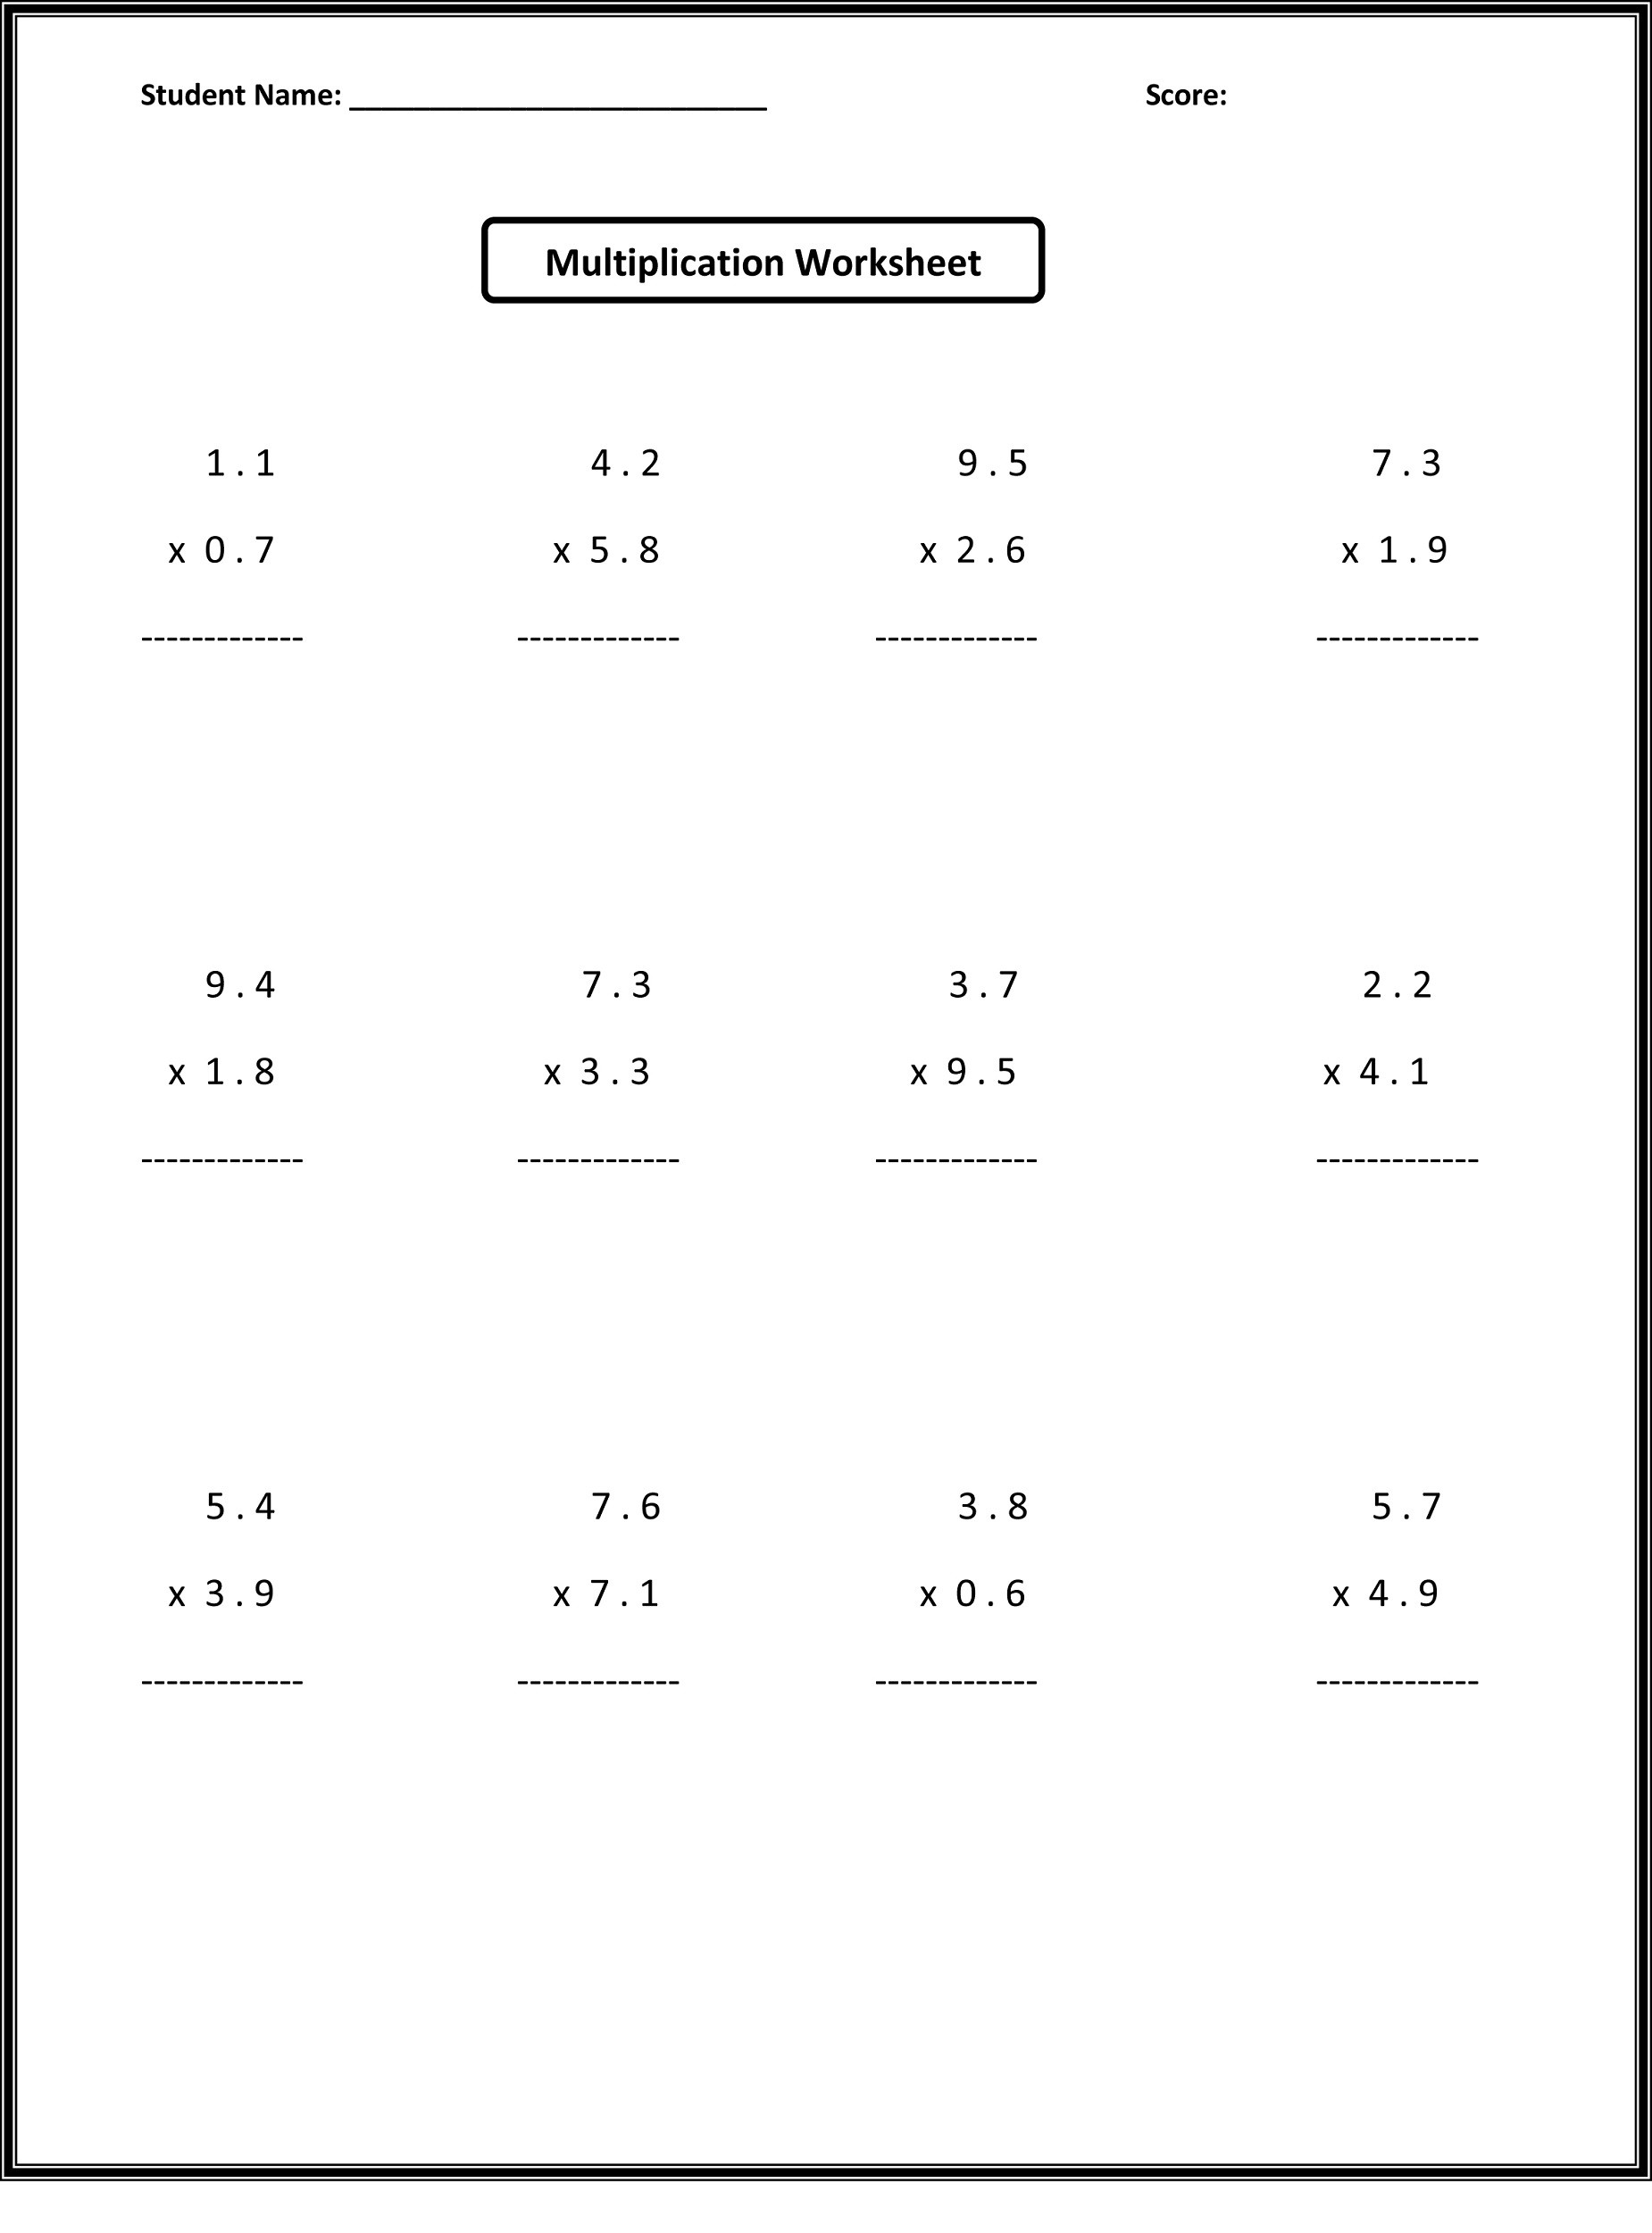 Probability Worksheet 6th Grade 6th Grade Math Worksheets Activity Shelter Free Decimals